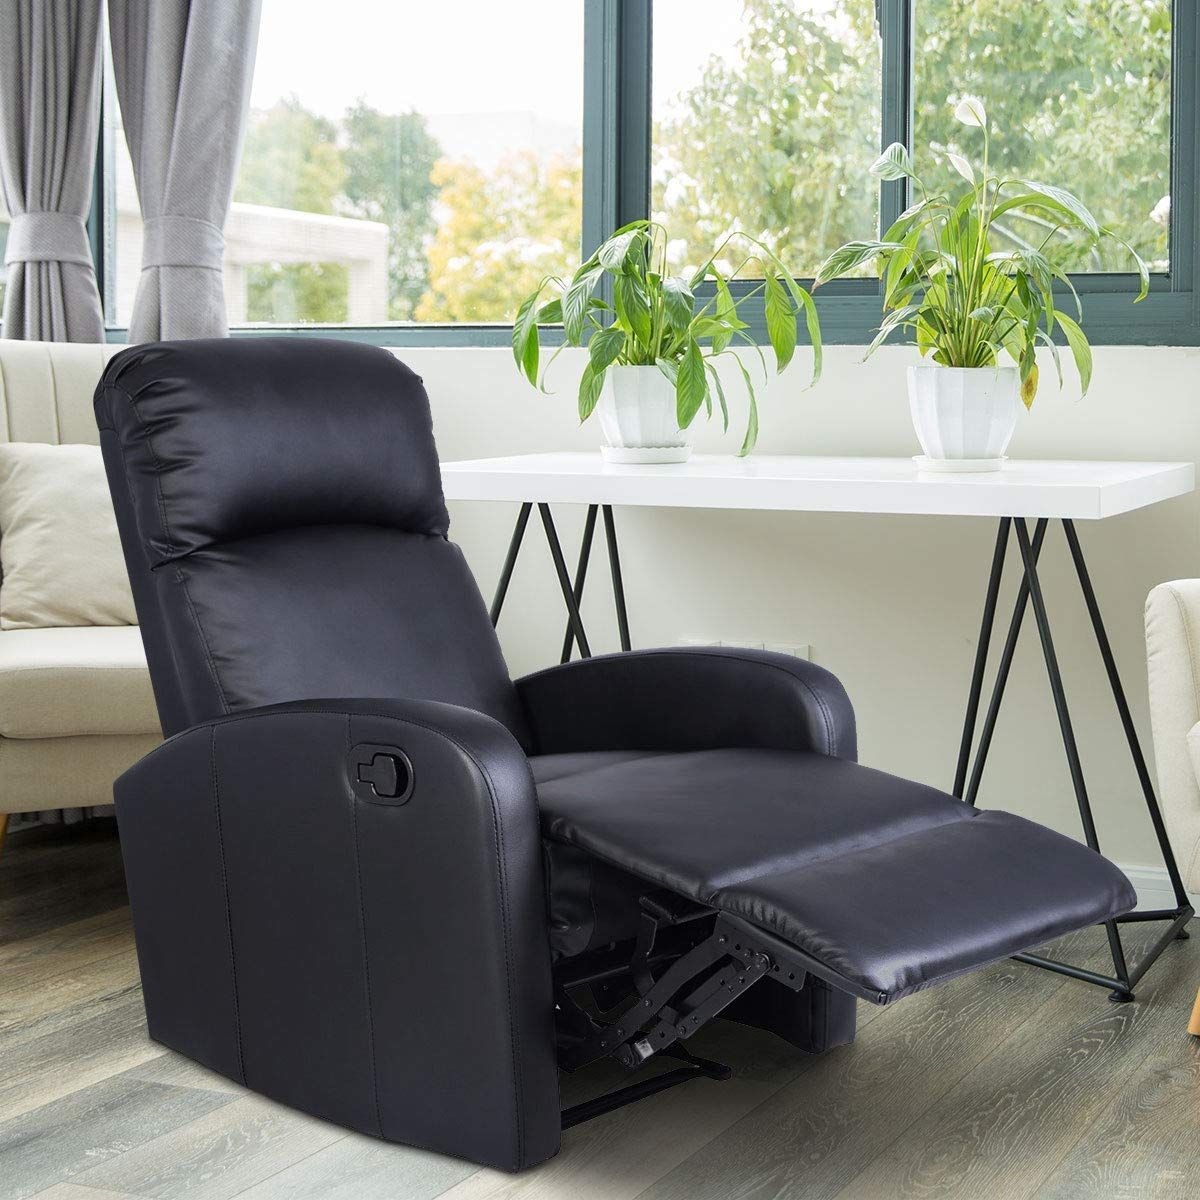 Giantex Manual Recliner Chair Black Lounger Leather Sofa Seat